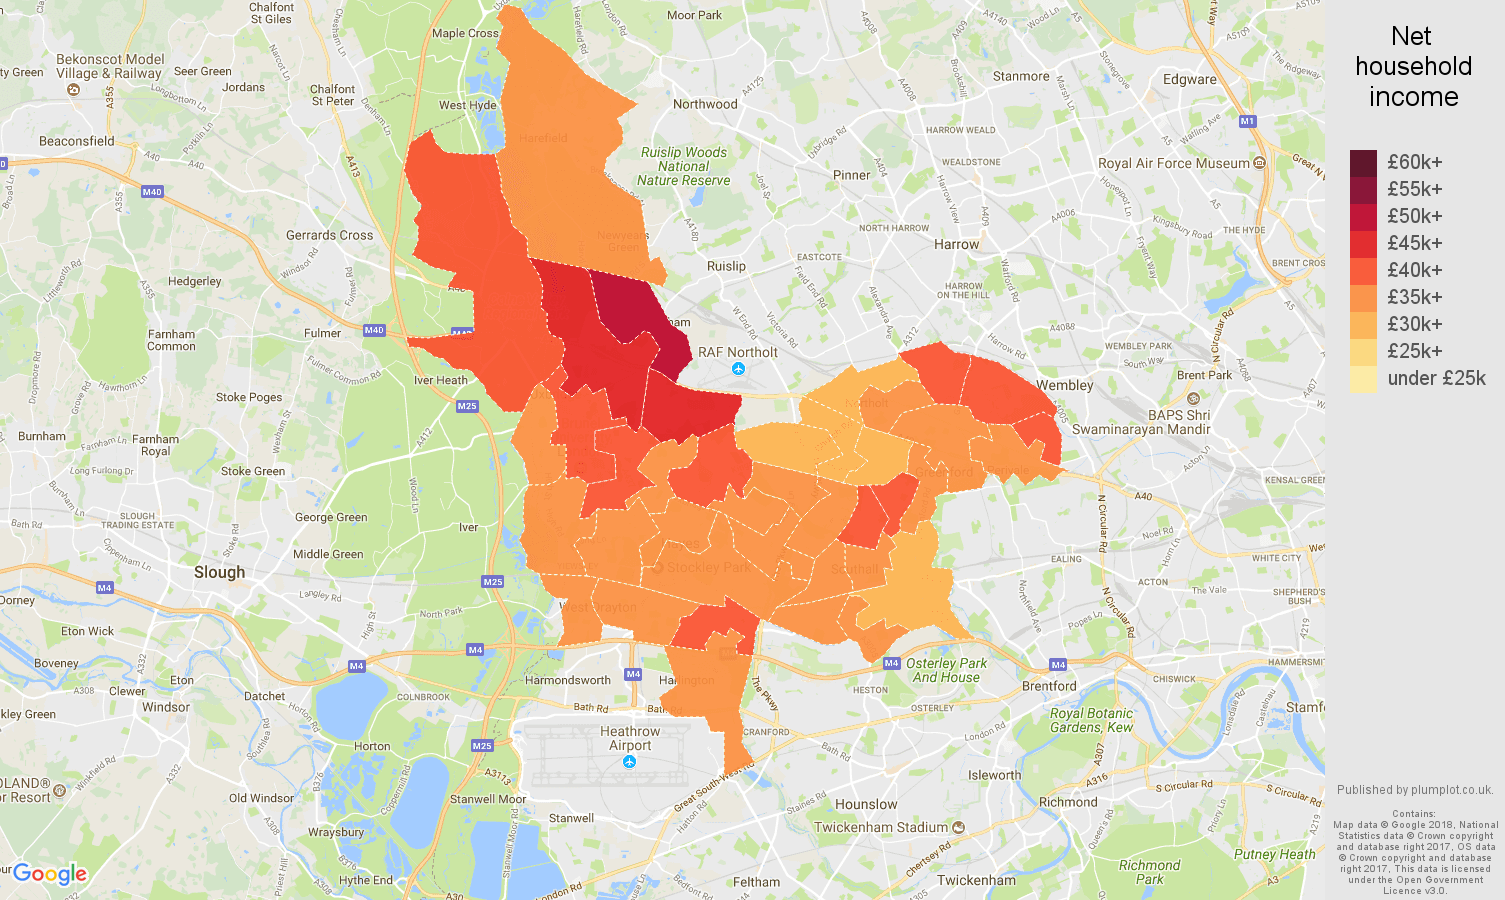 Southall net household income map